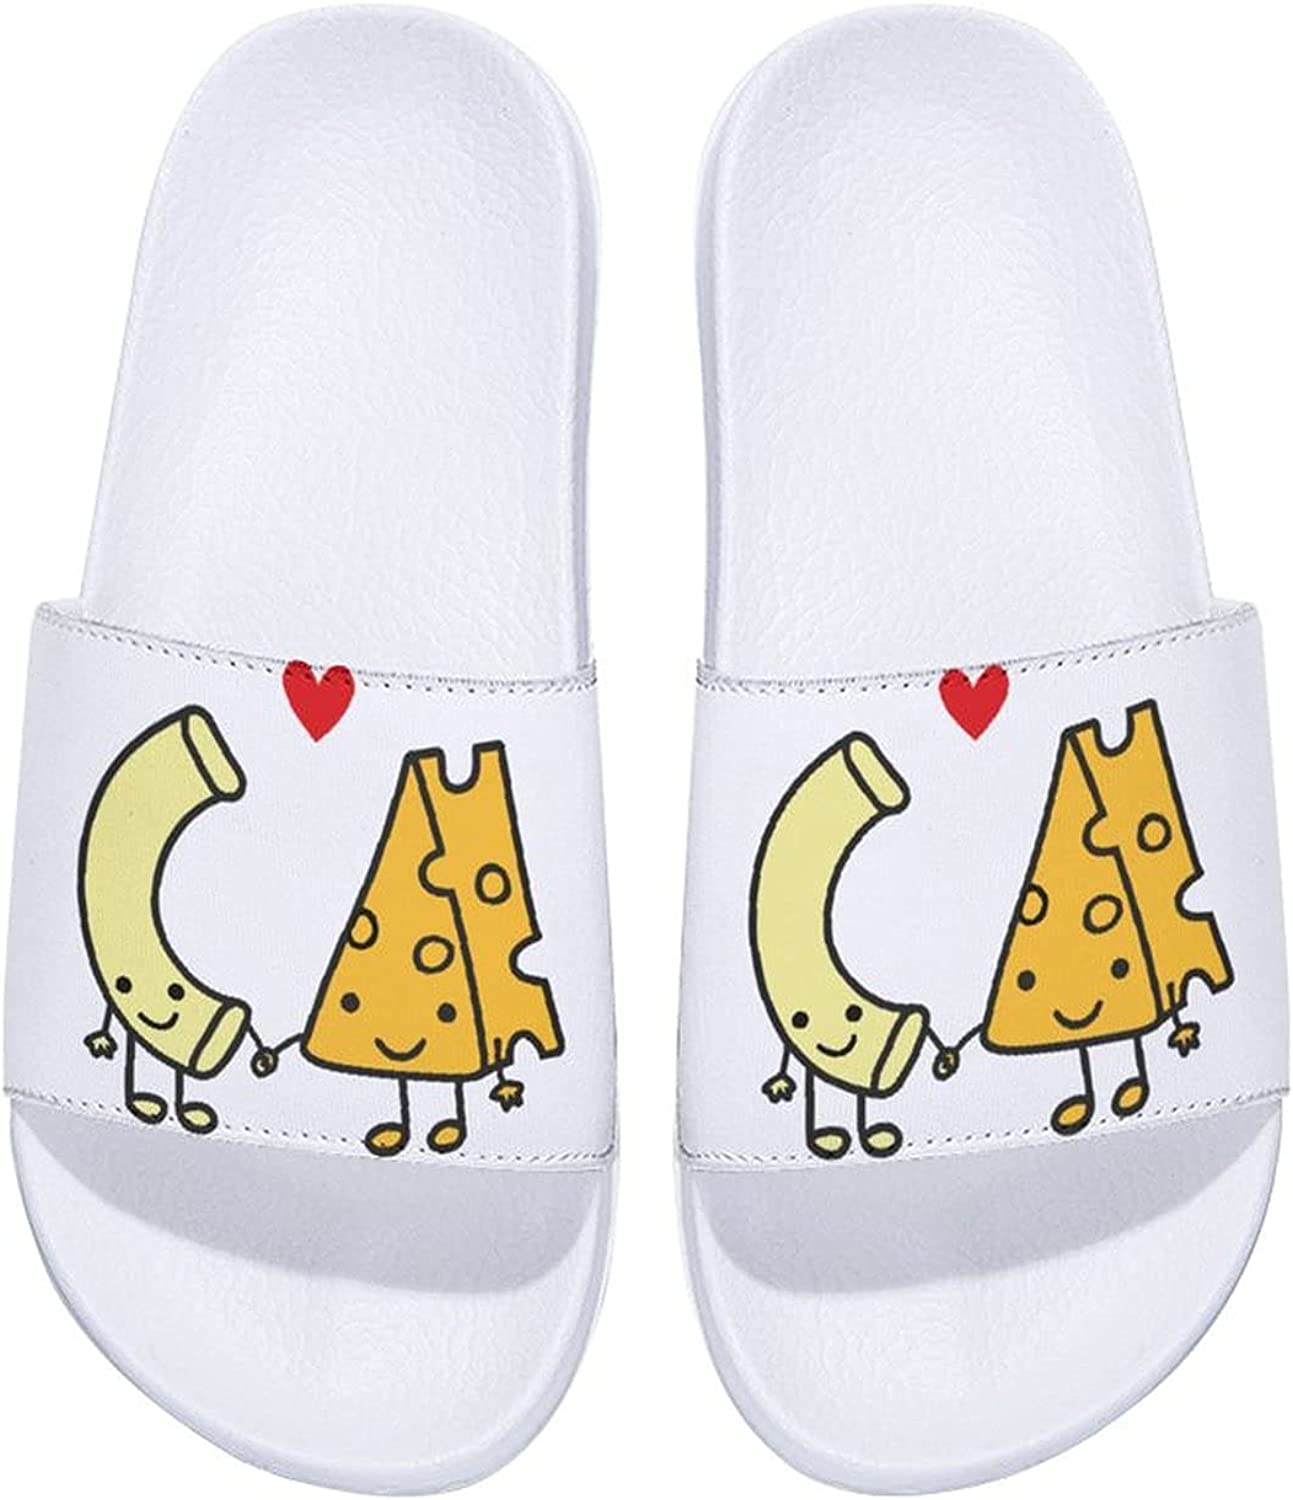 Macaroni And Cheese Men's and Comfort Indo Sandals Slide 5 ☆ popular Women's Max 51% OFF